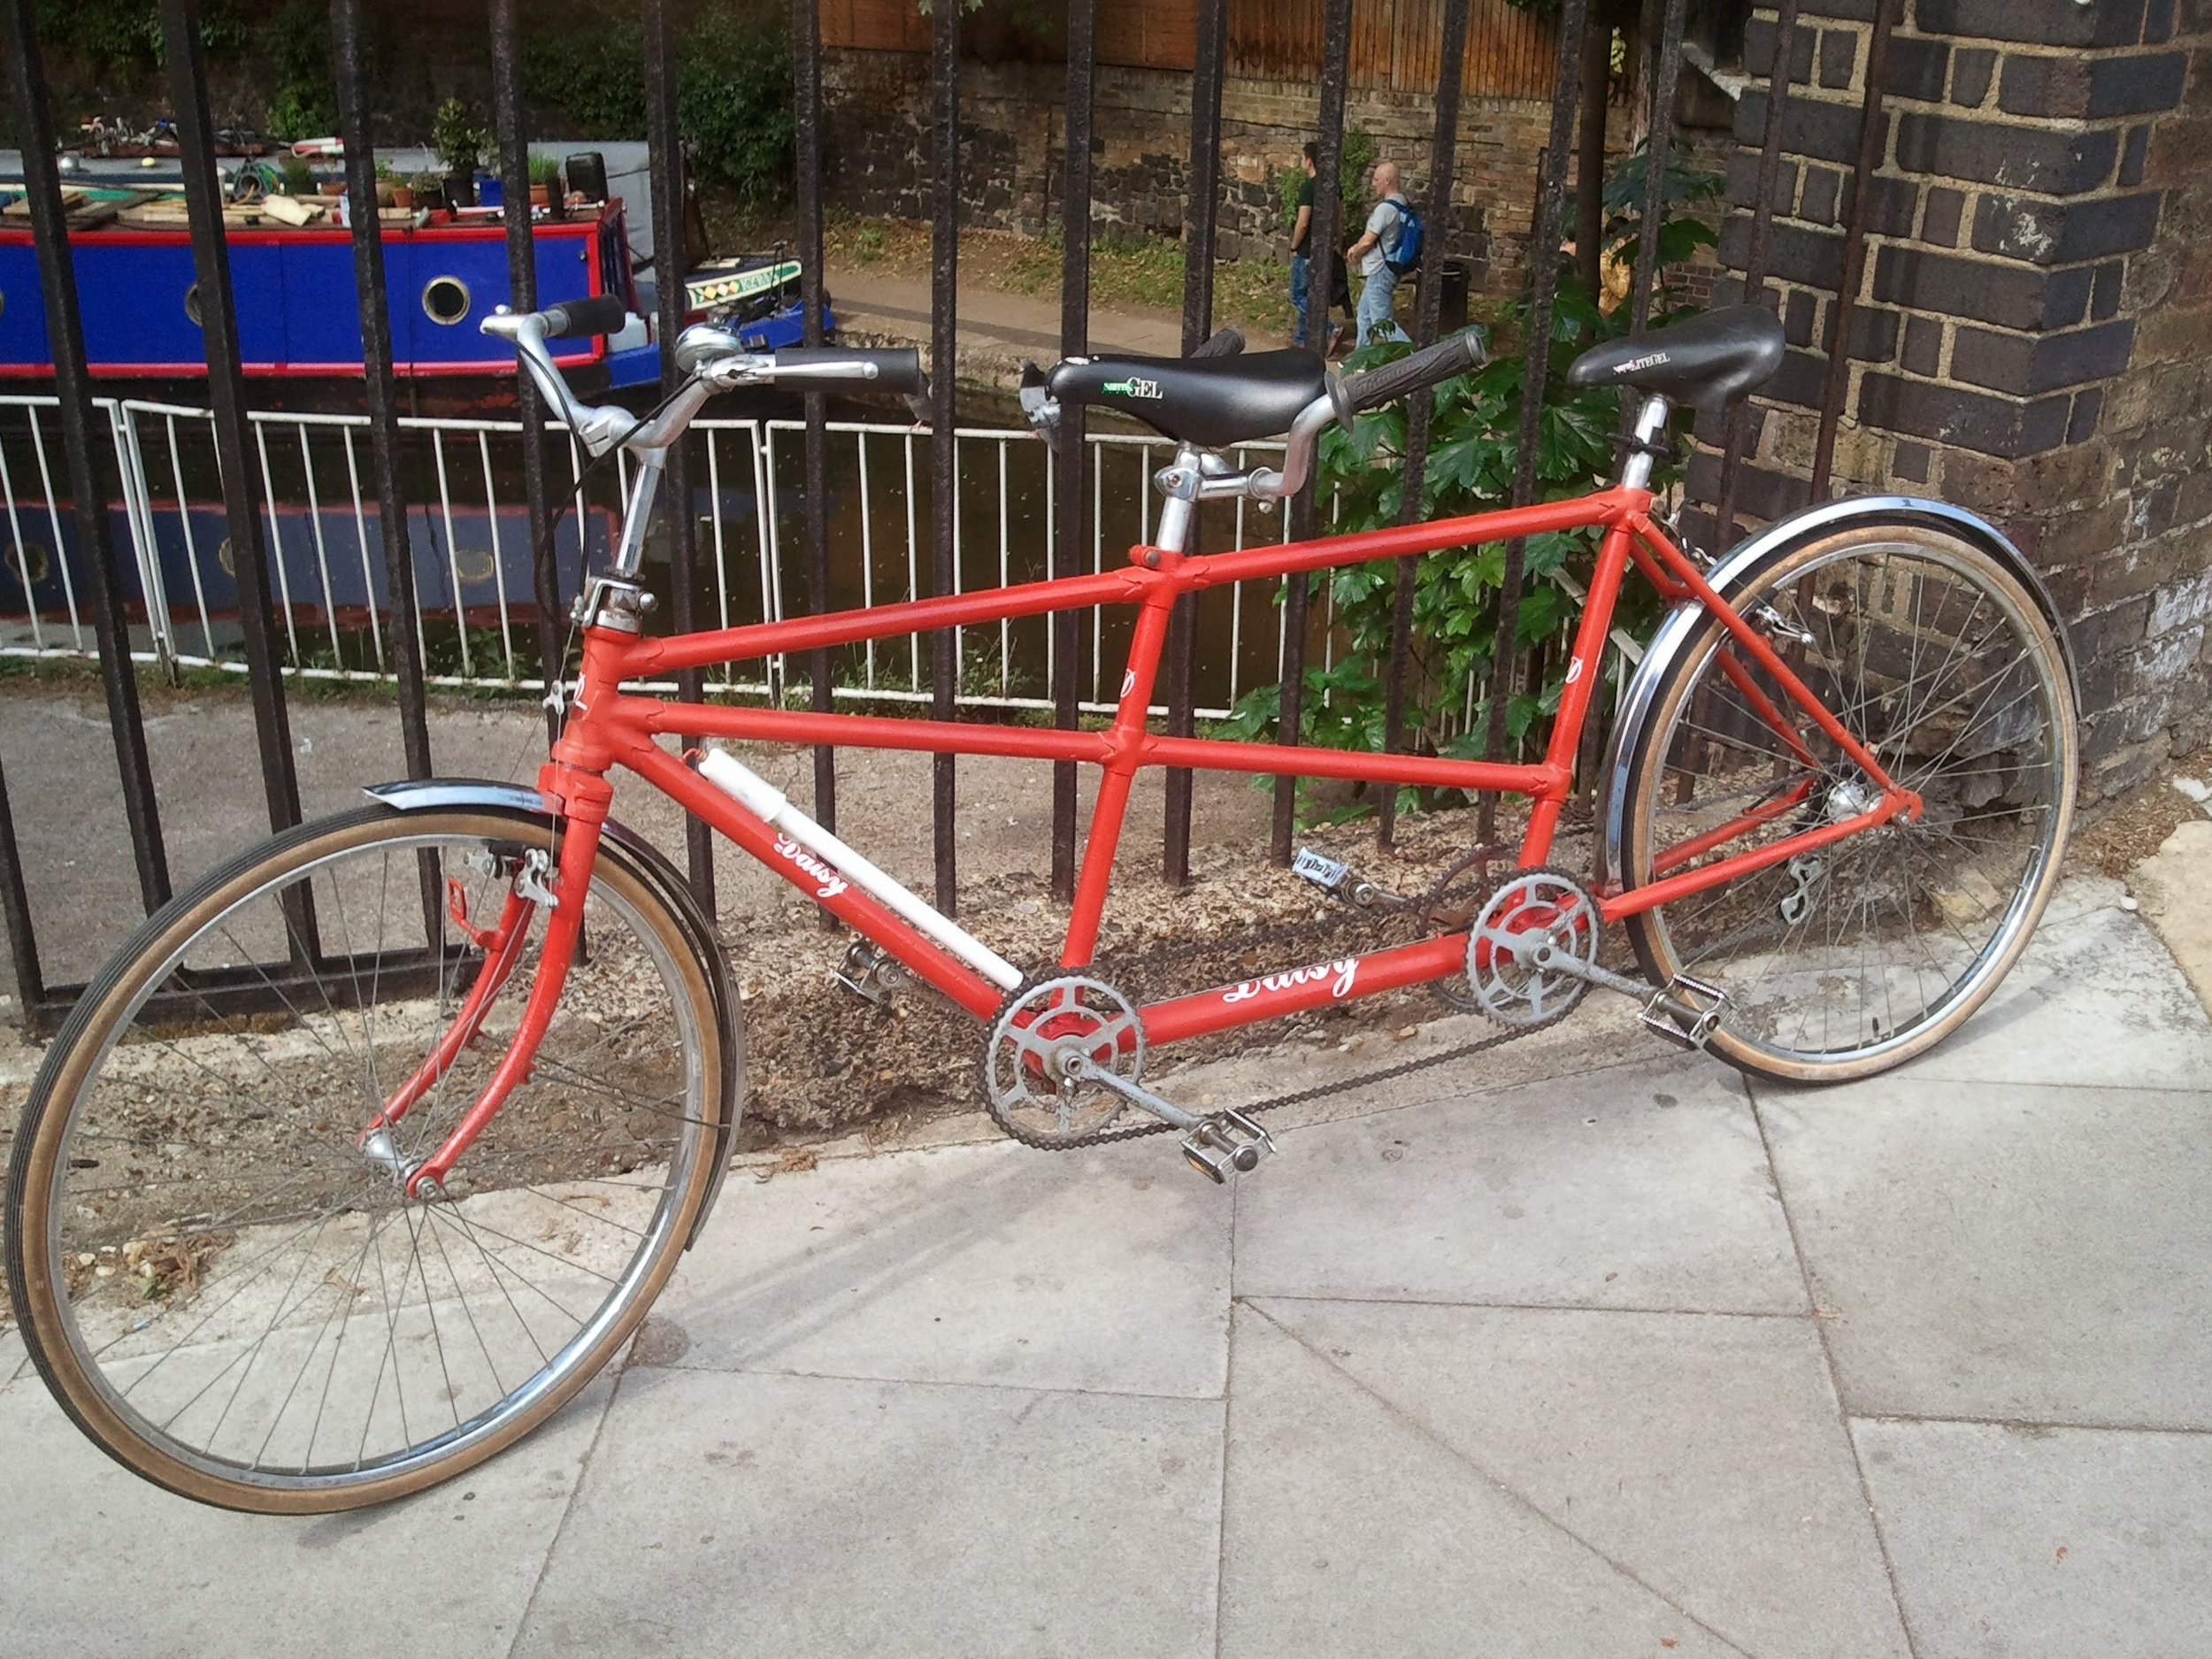 Circa 1950's tandem  - Sold   Servicing  - new timing chain   July 2015